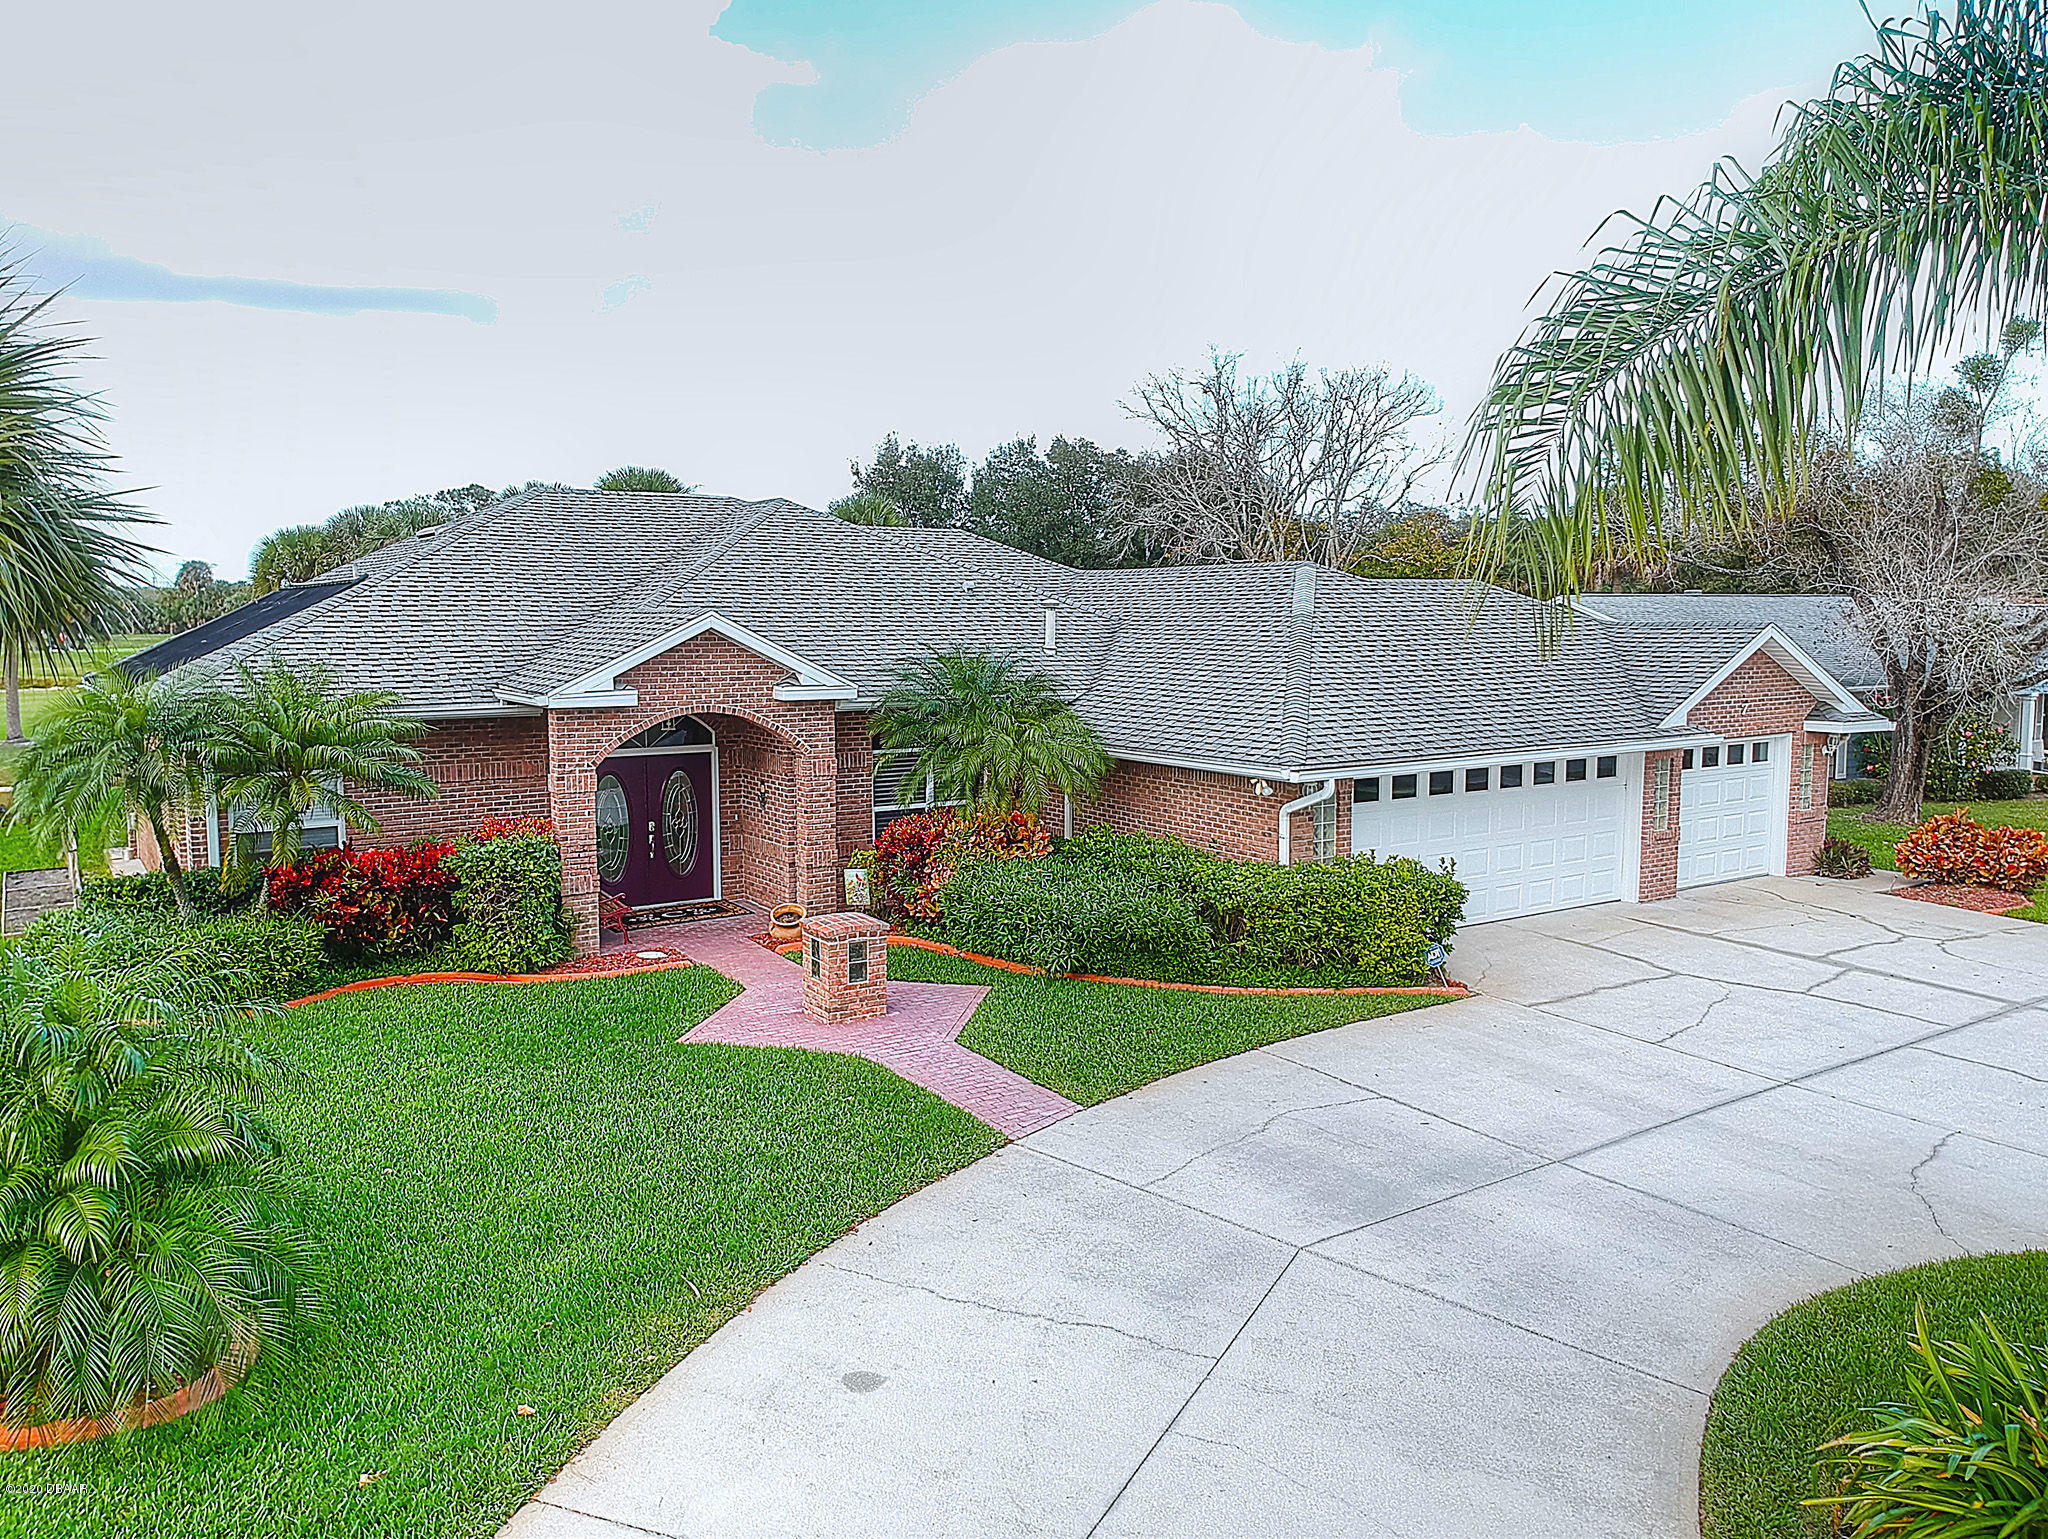 Photo of 7 Fairgreen Avenue, New Smyrna Beach, FL 32168